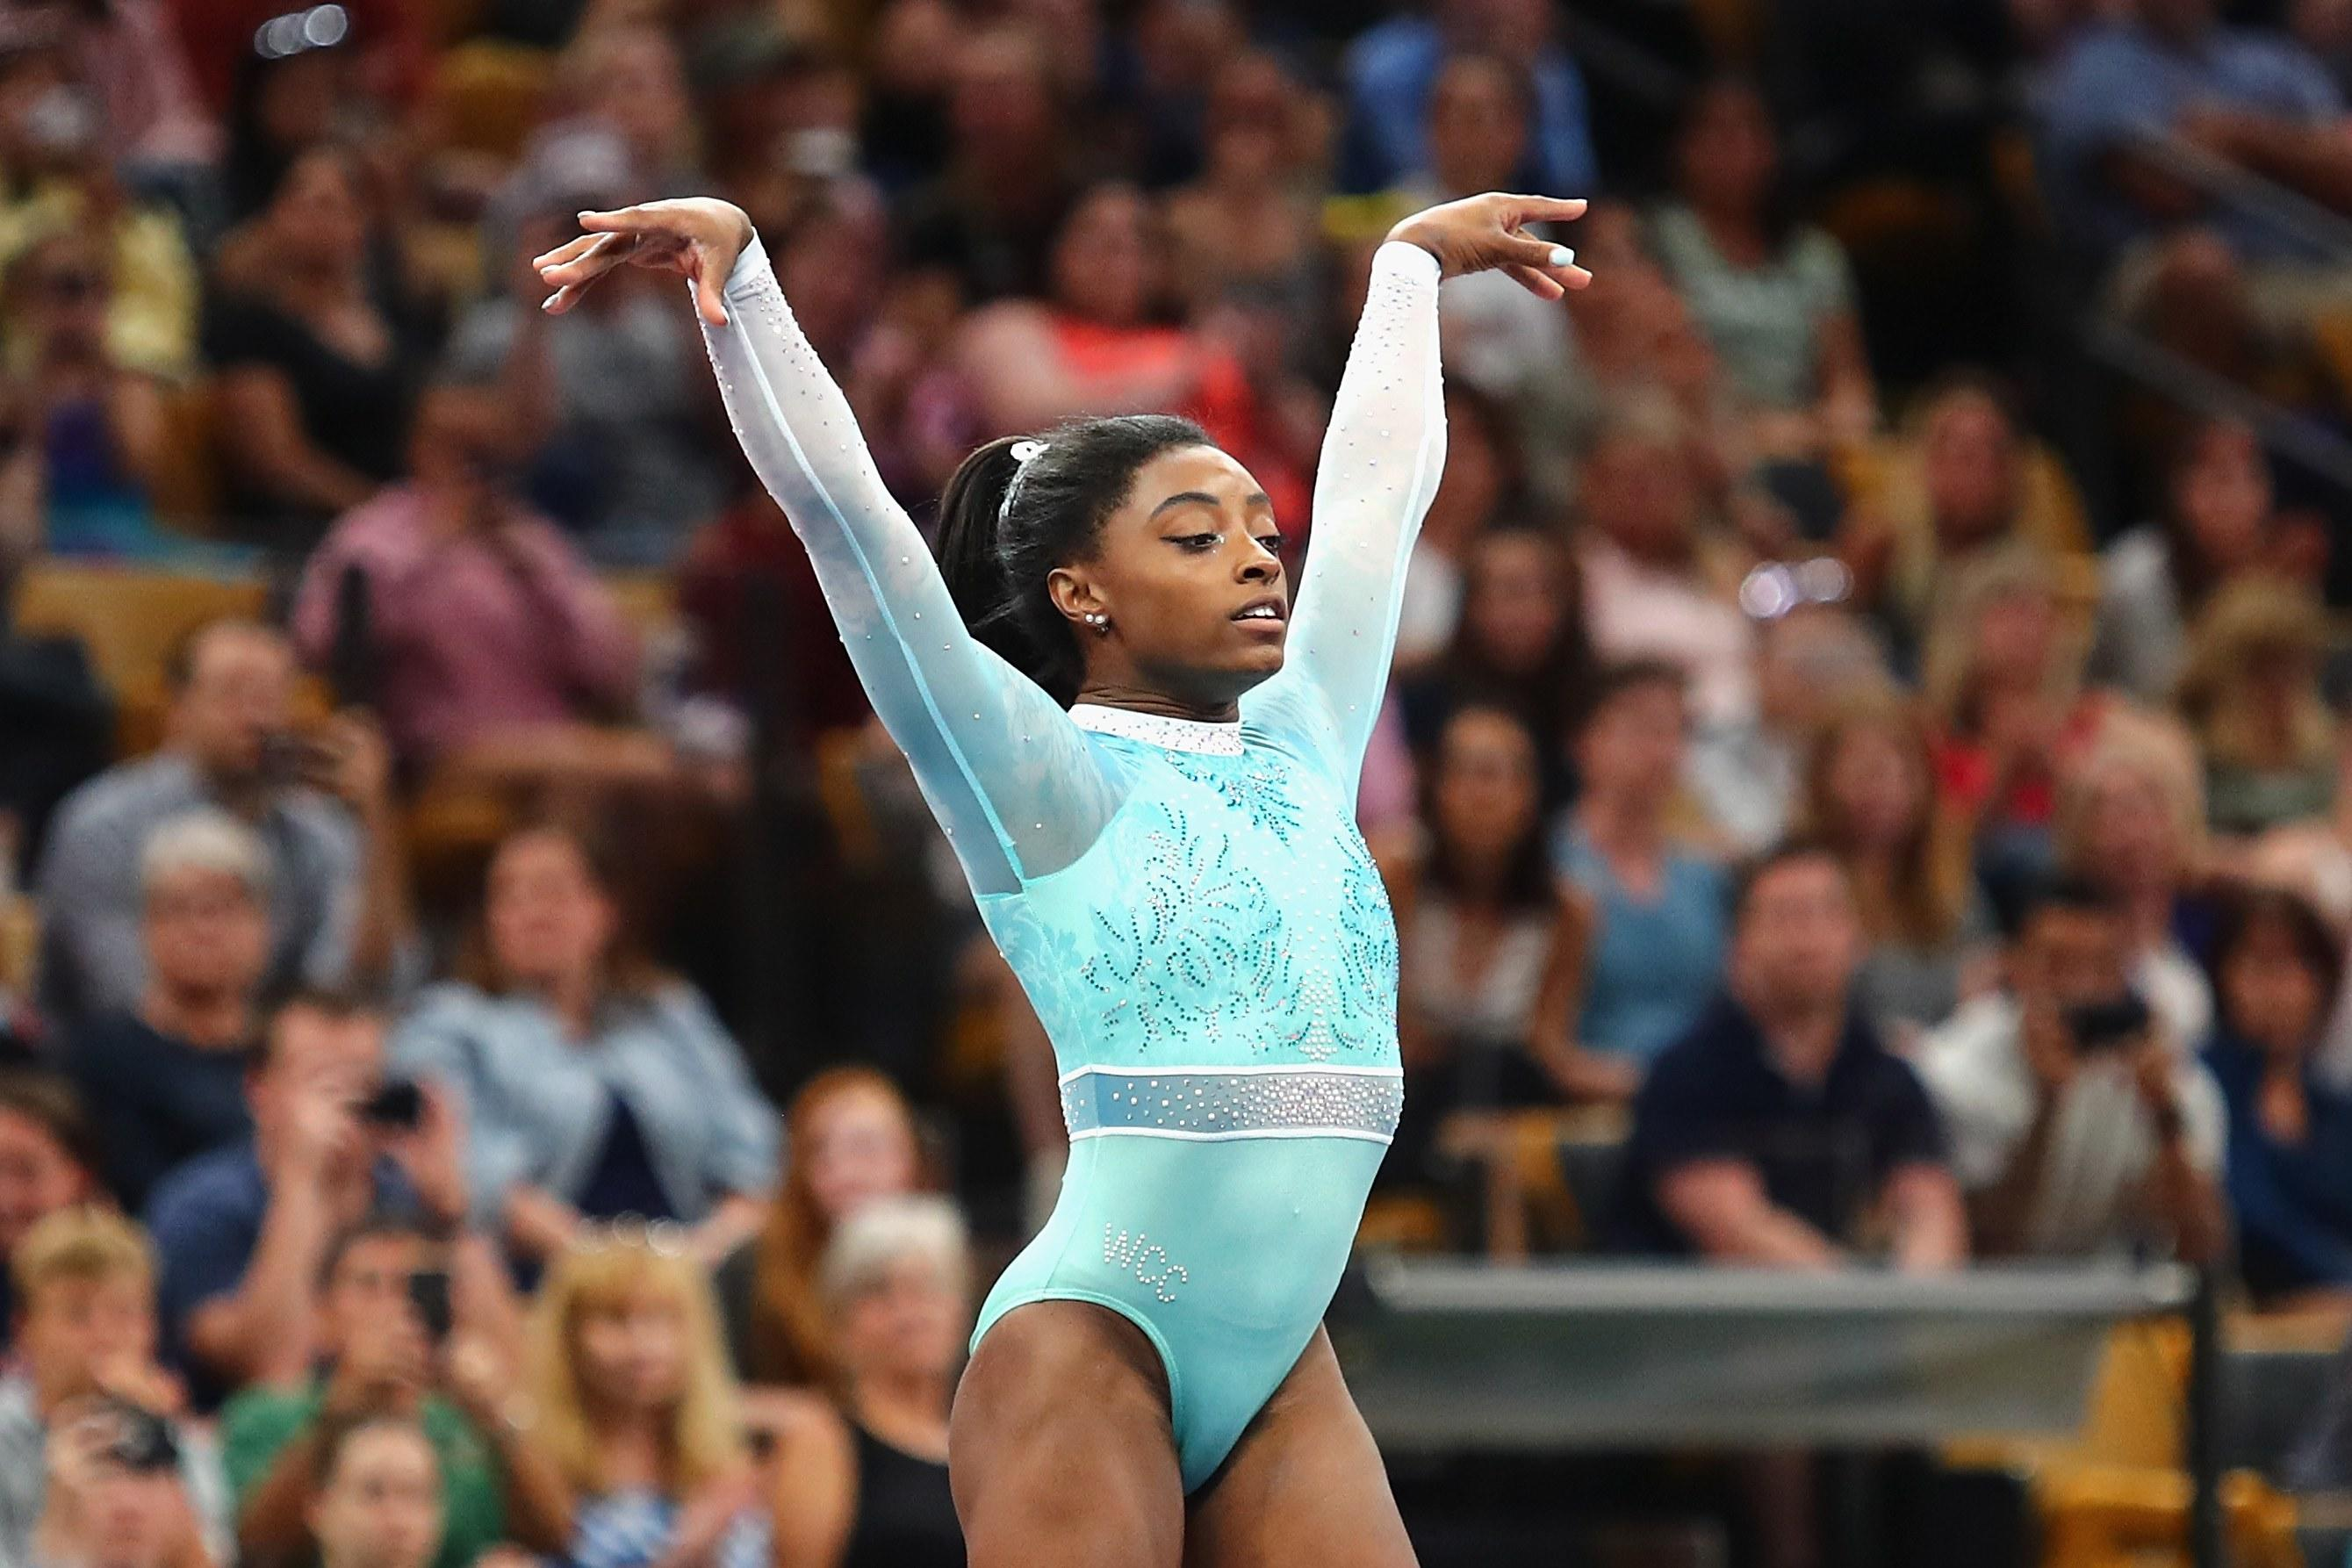 Simone Biles Calls Out USA Gymnastics CEO Mary Bono Over Anti-Nike Tweet